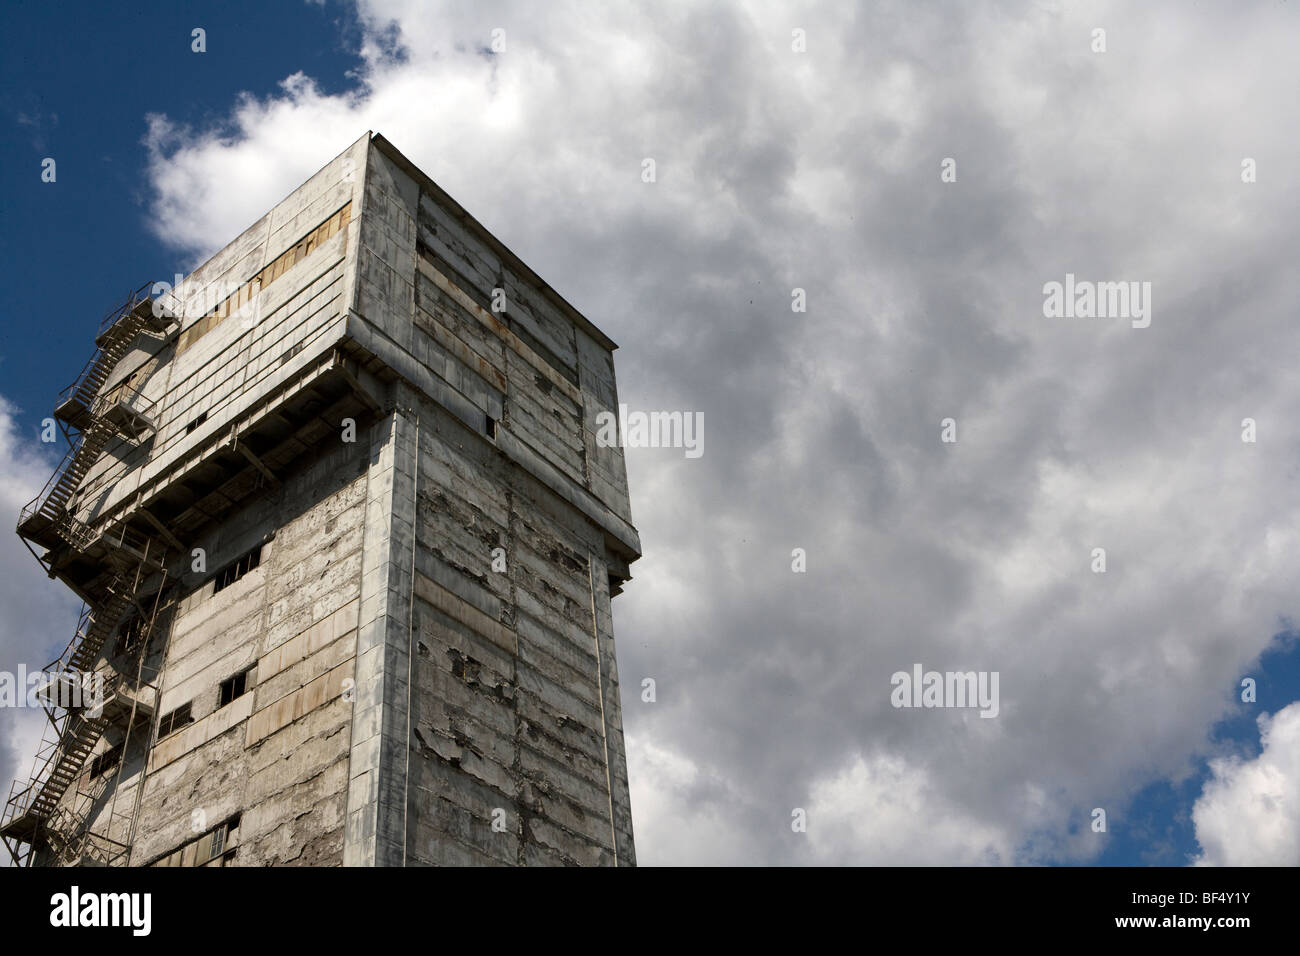 Imposing industrial tower structure of factory, Russia - Stock Image